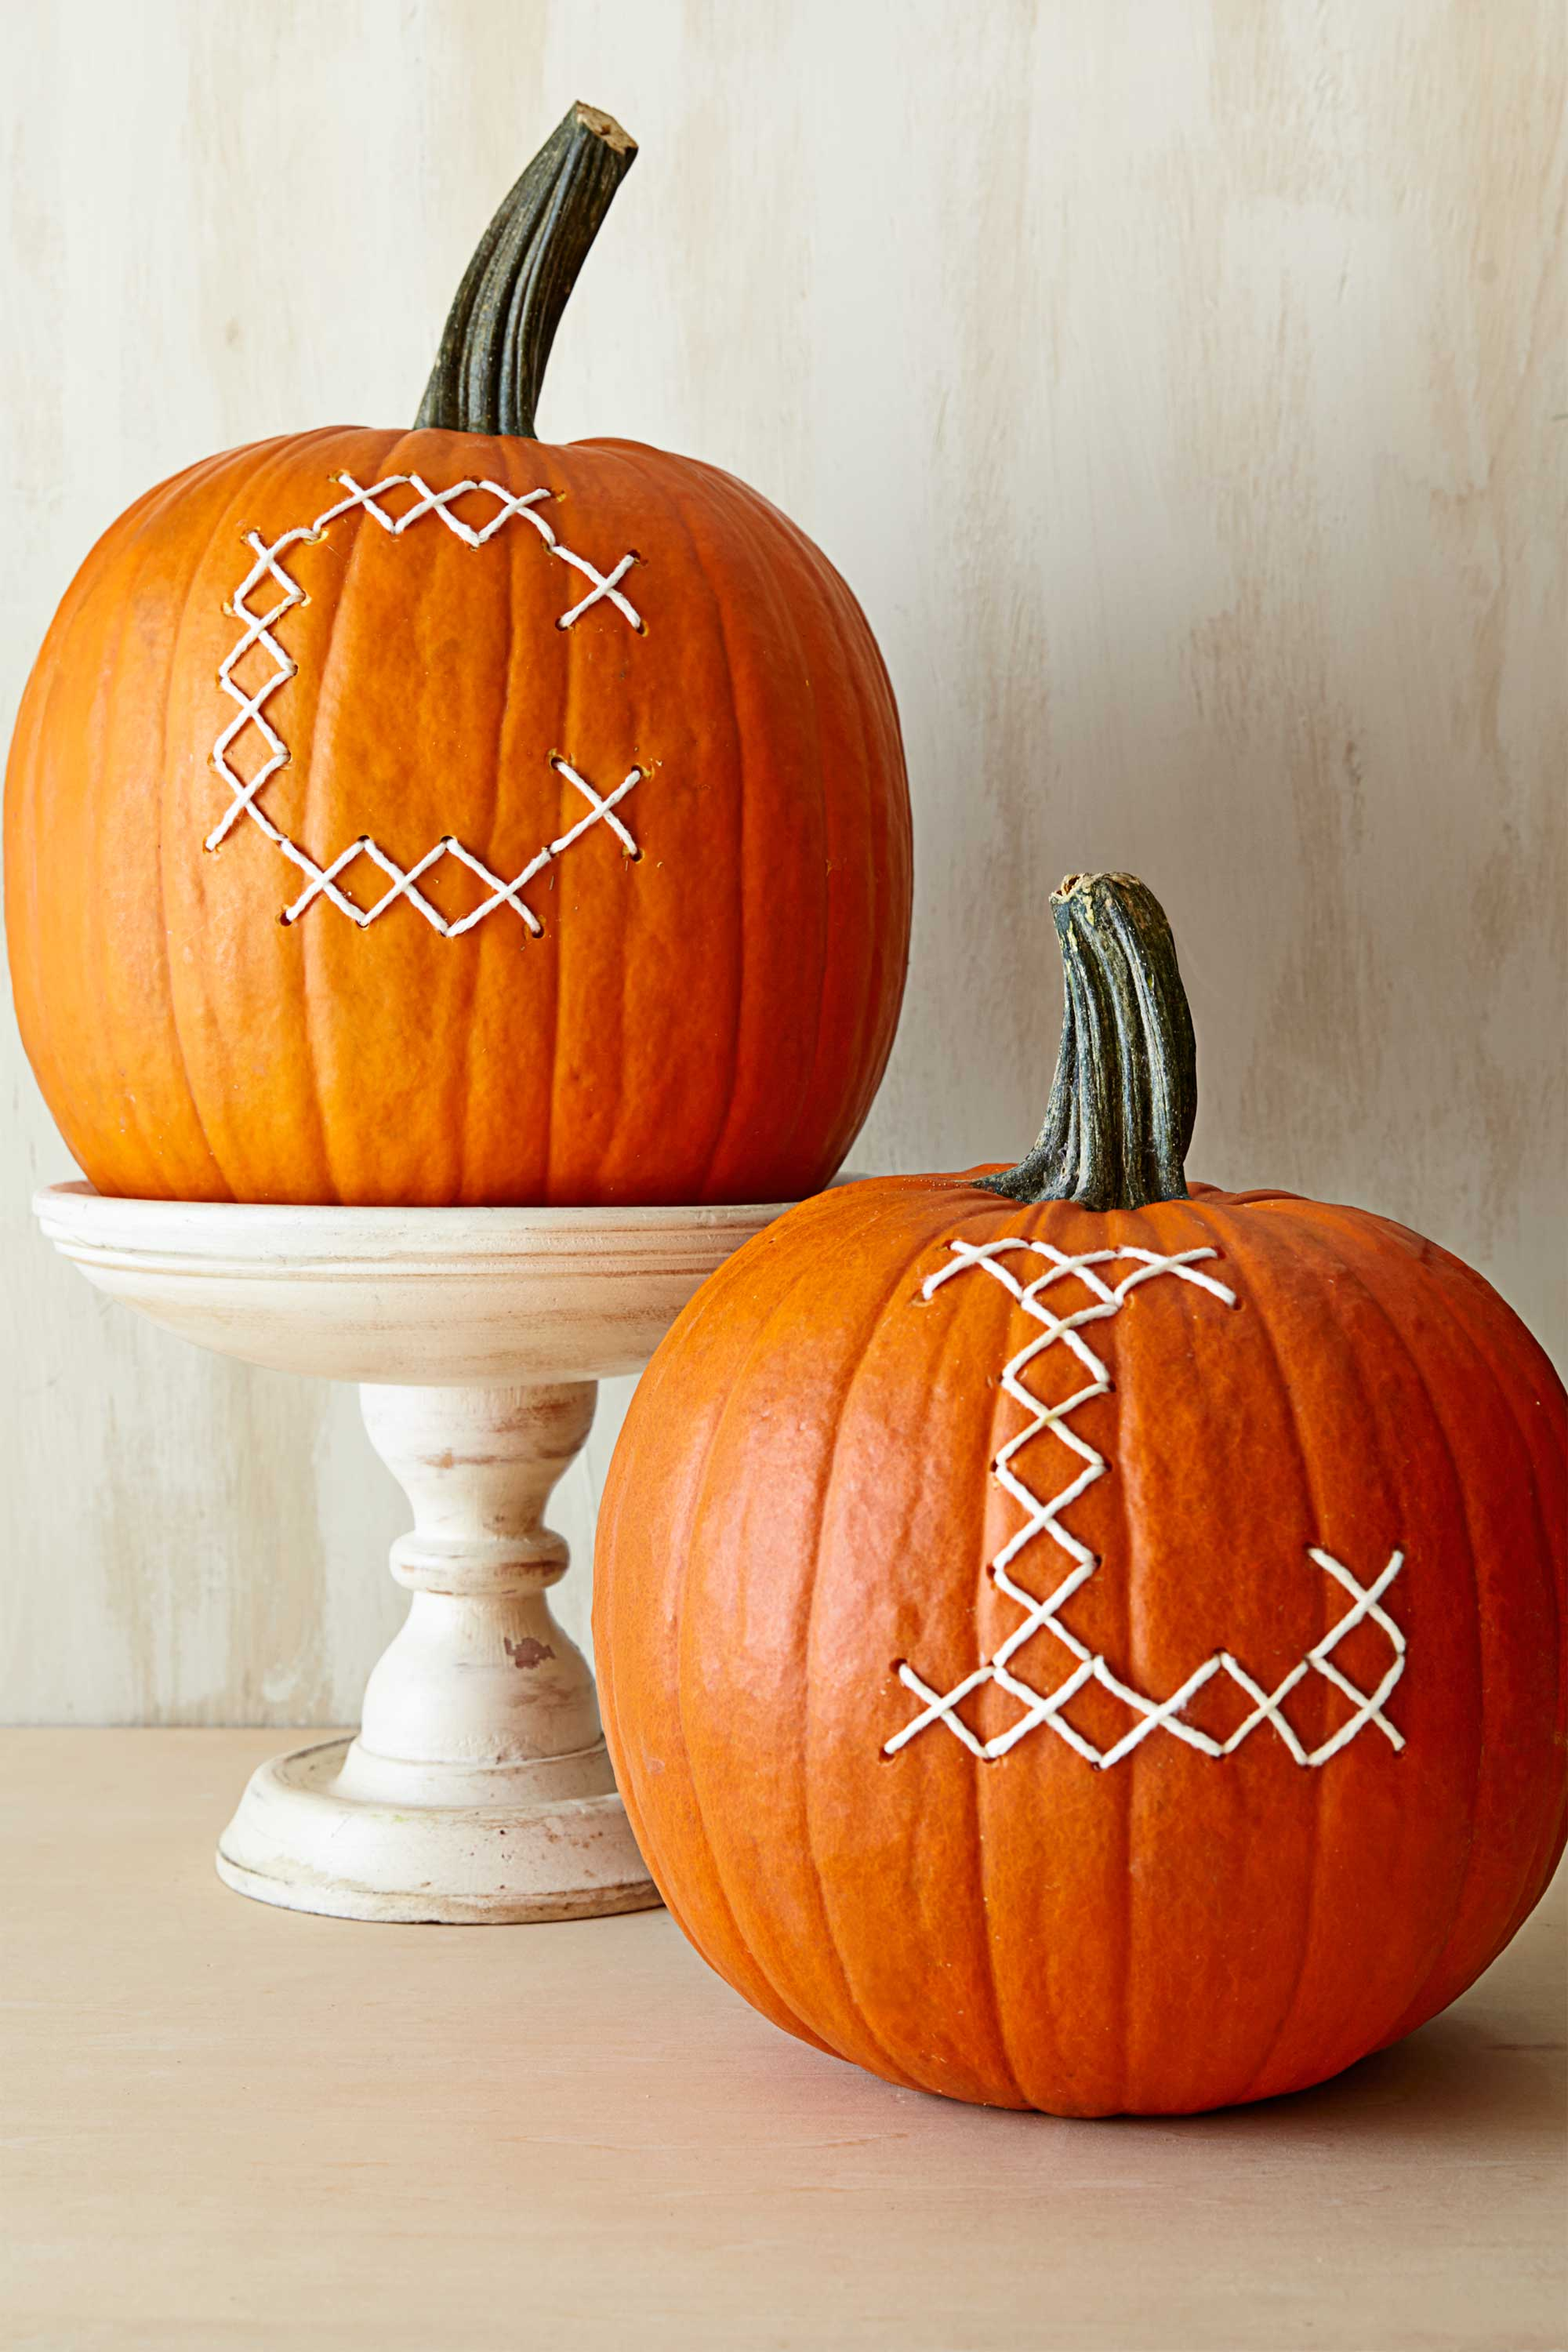 88 cool pumpkin decorating ideas easy halloween pumpkin decorations and crafts 2017 - Decorated Halloween Pumpkins